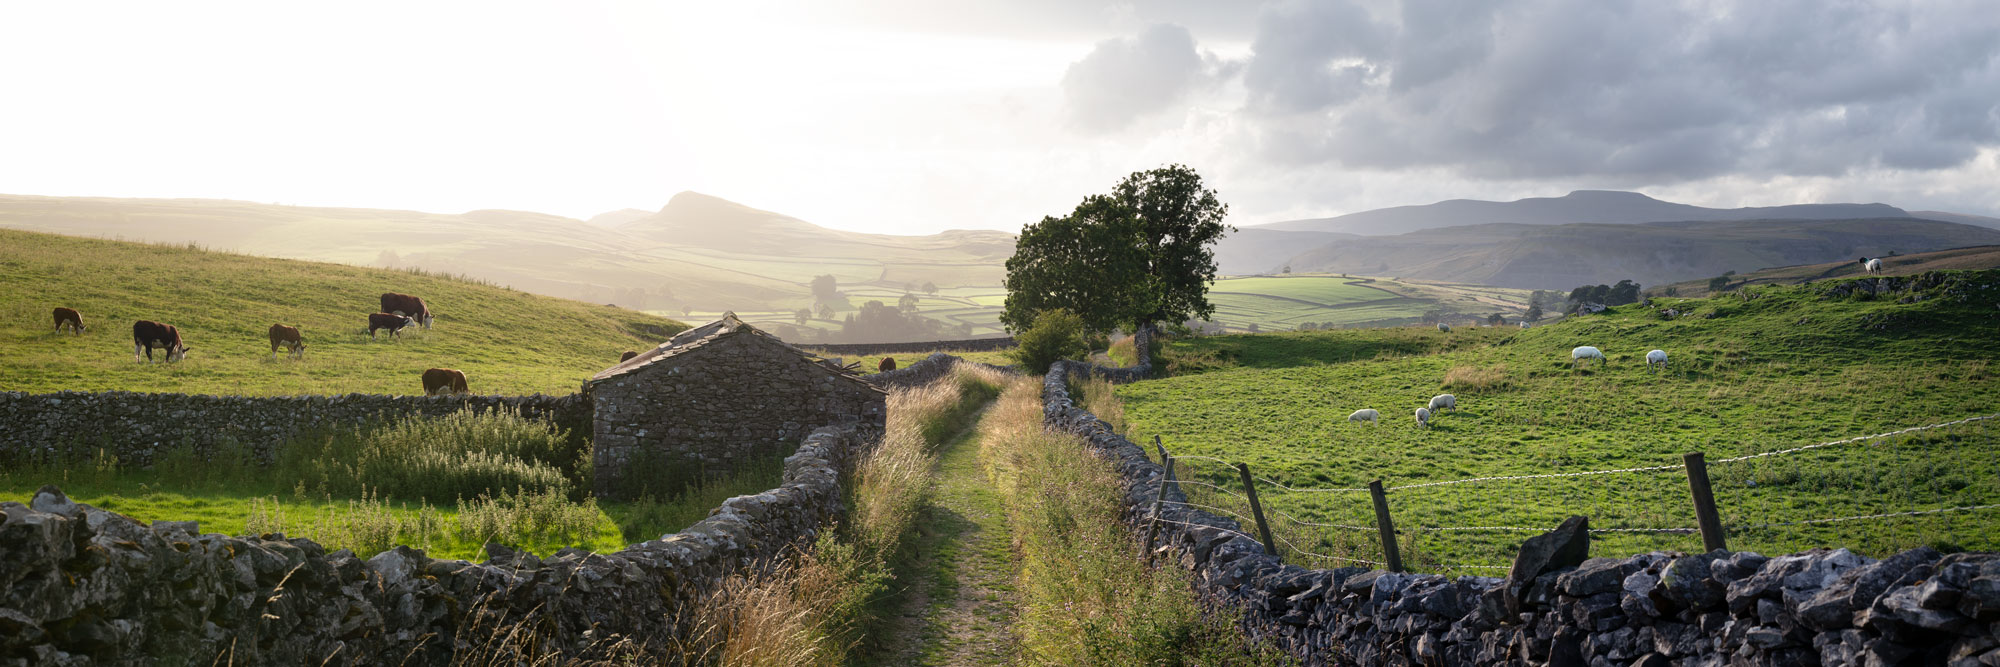 North Yorkshire dales hills and fields scene